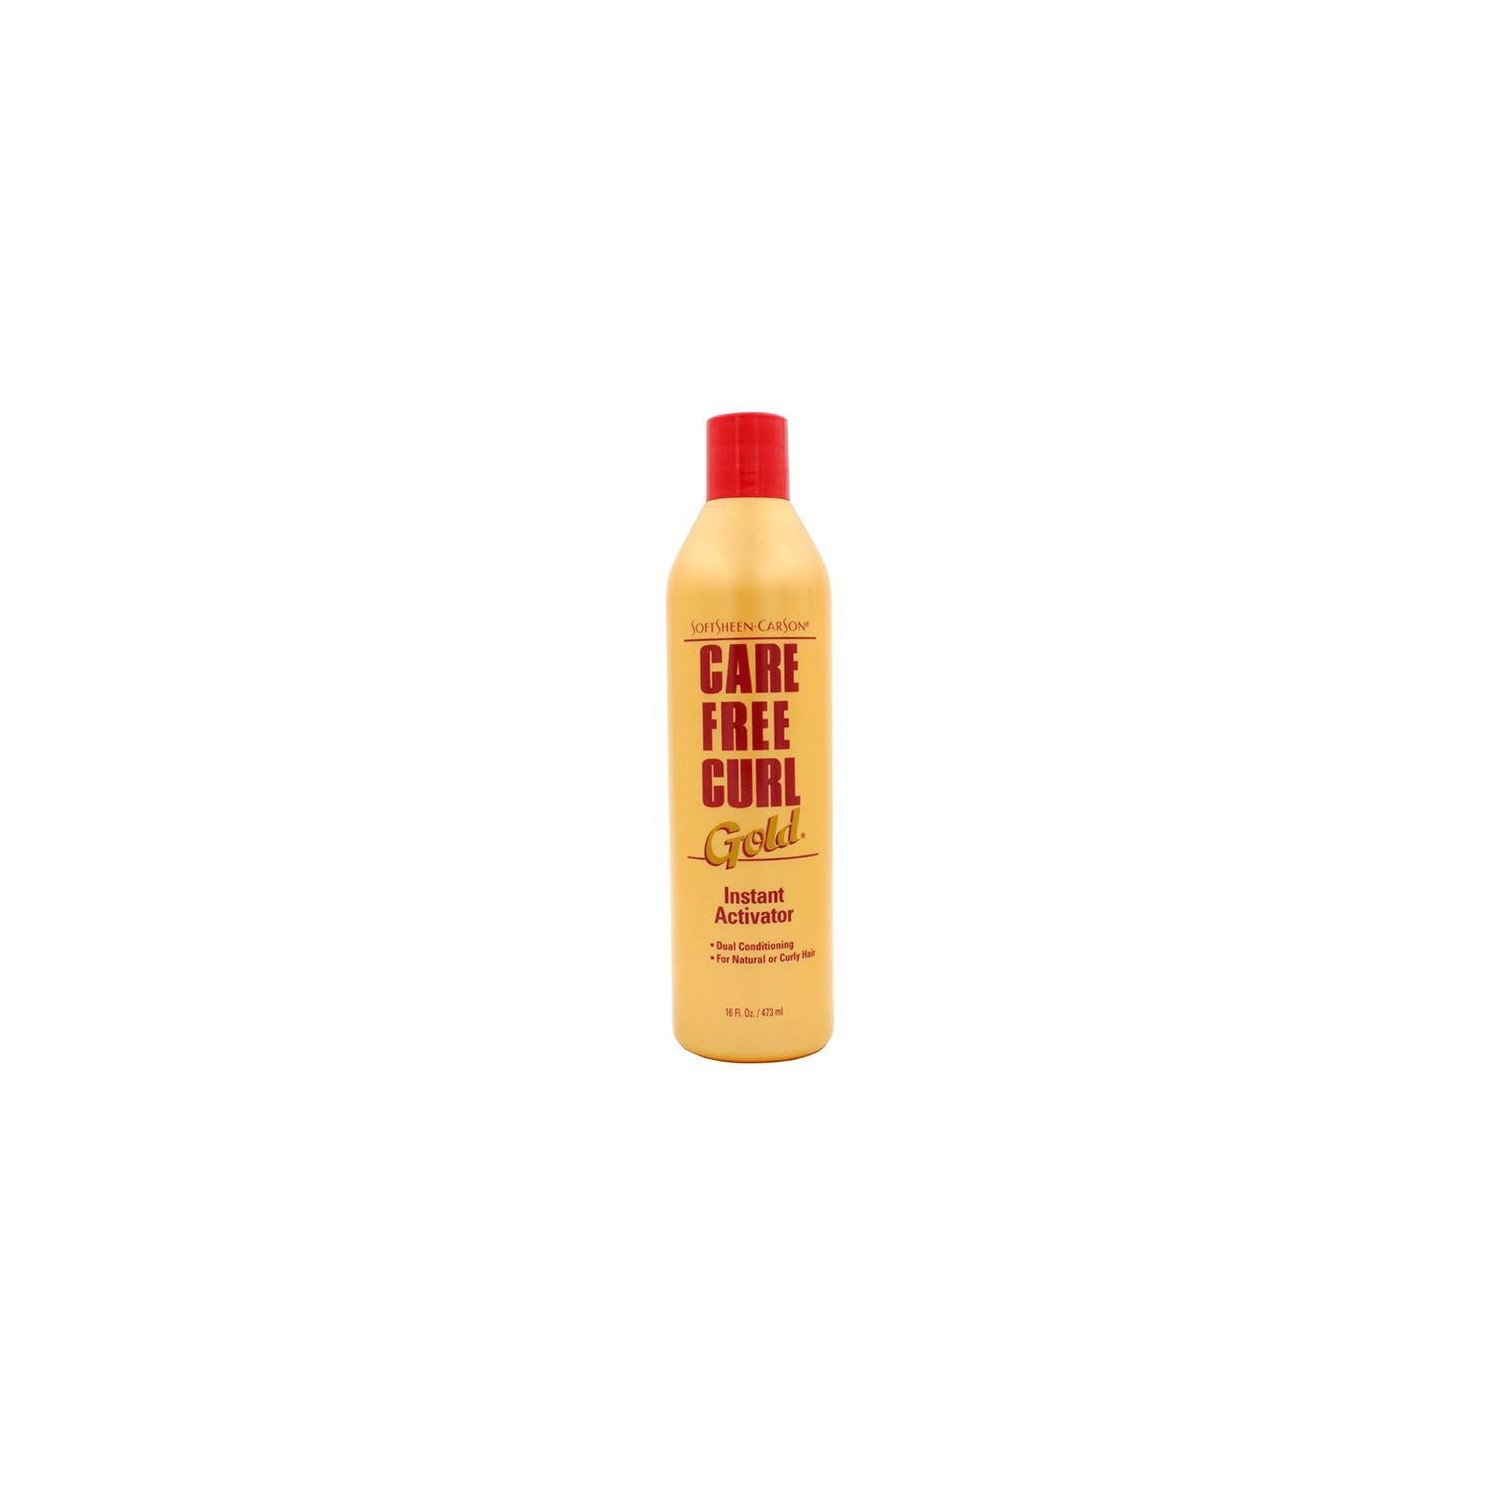 Soft & Sheen Carson Care Free Curl Gold Instant Activator 473 Ml